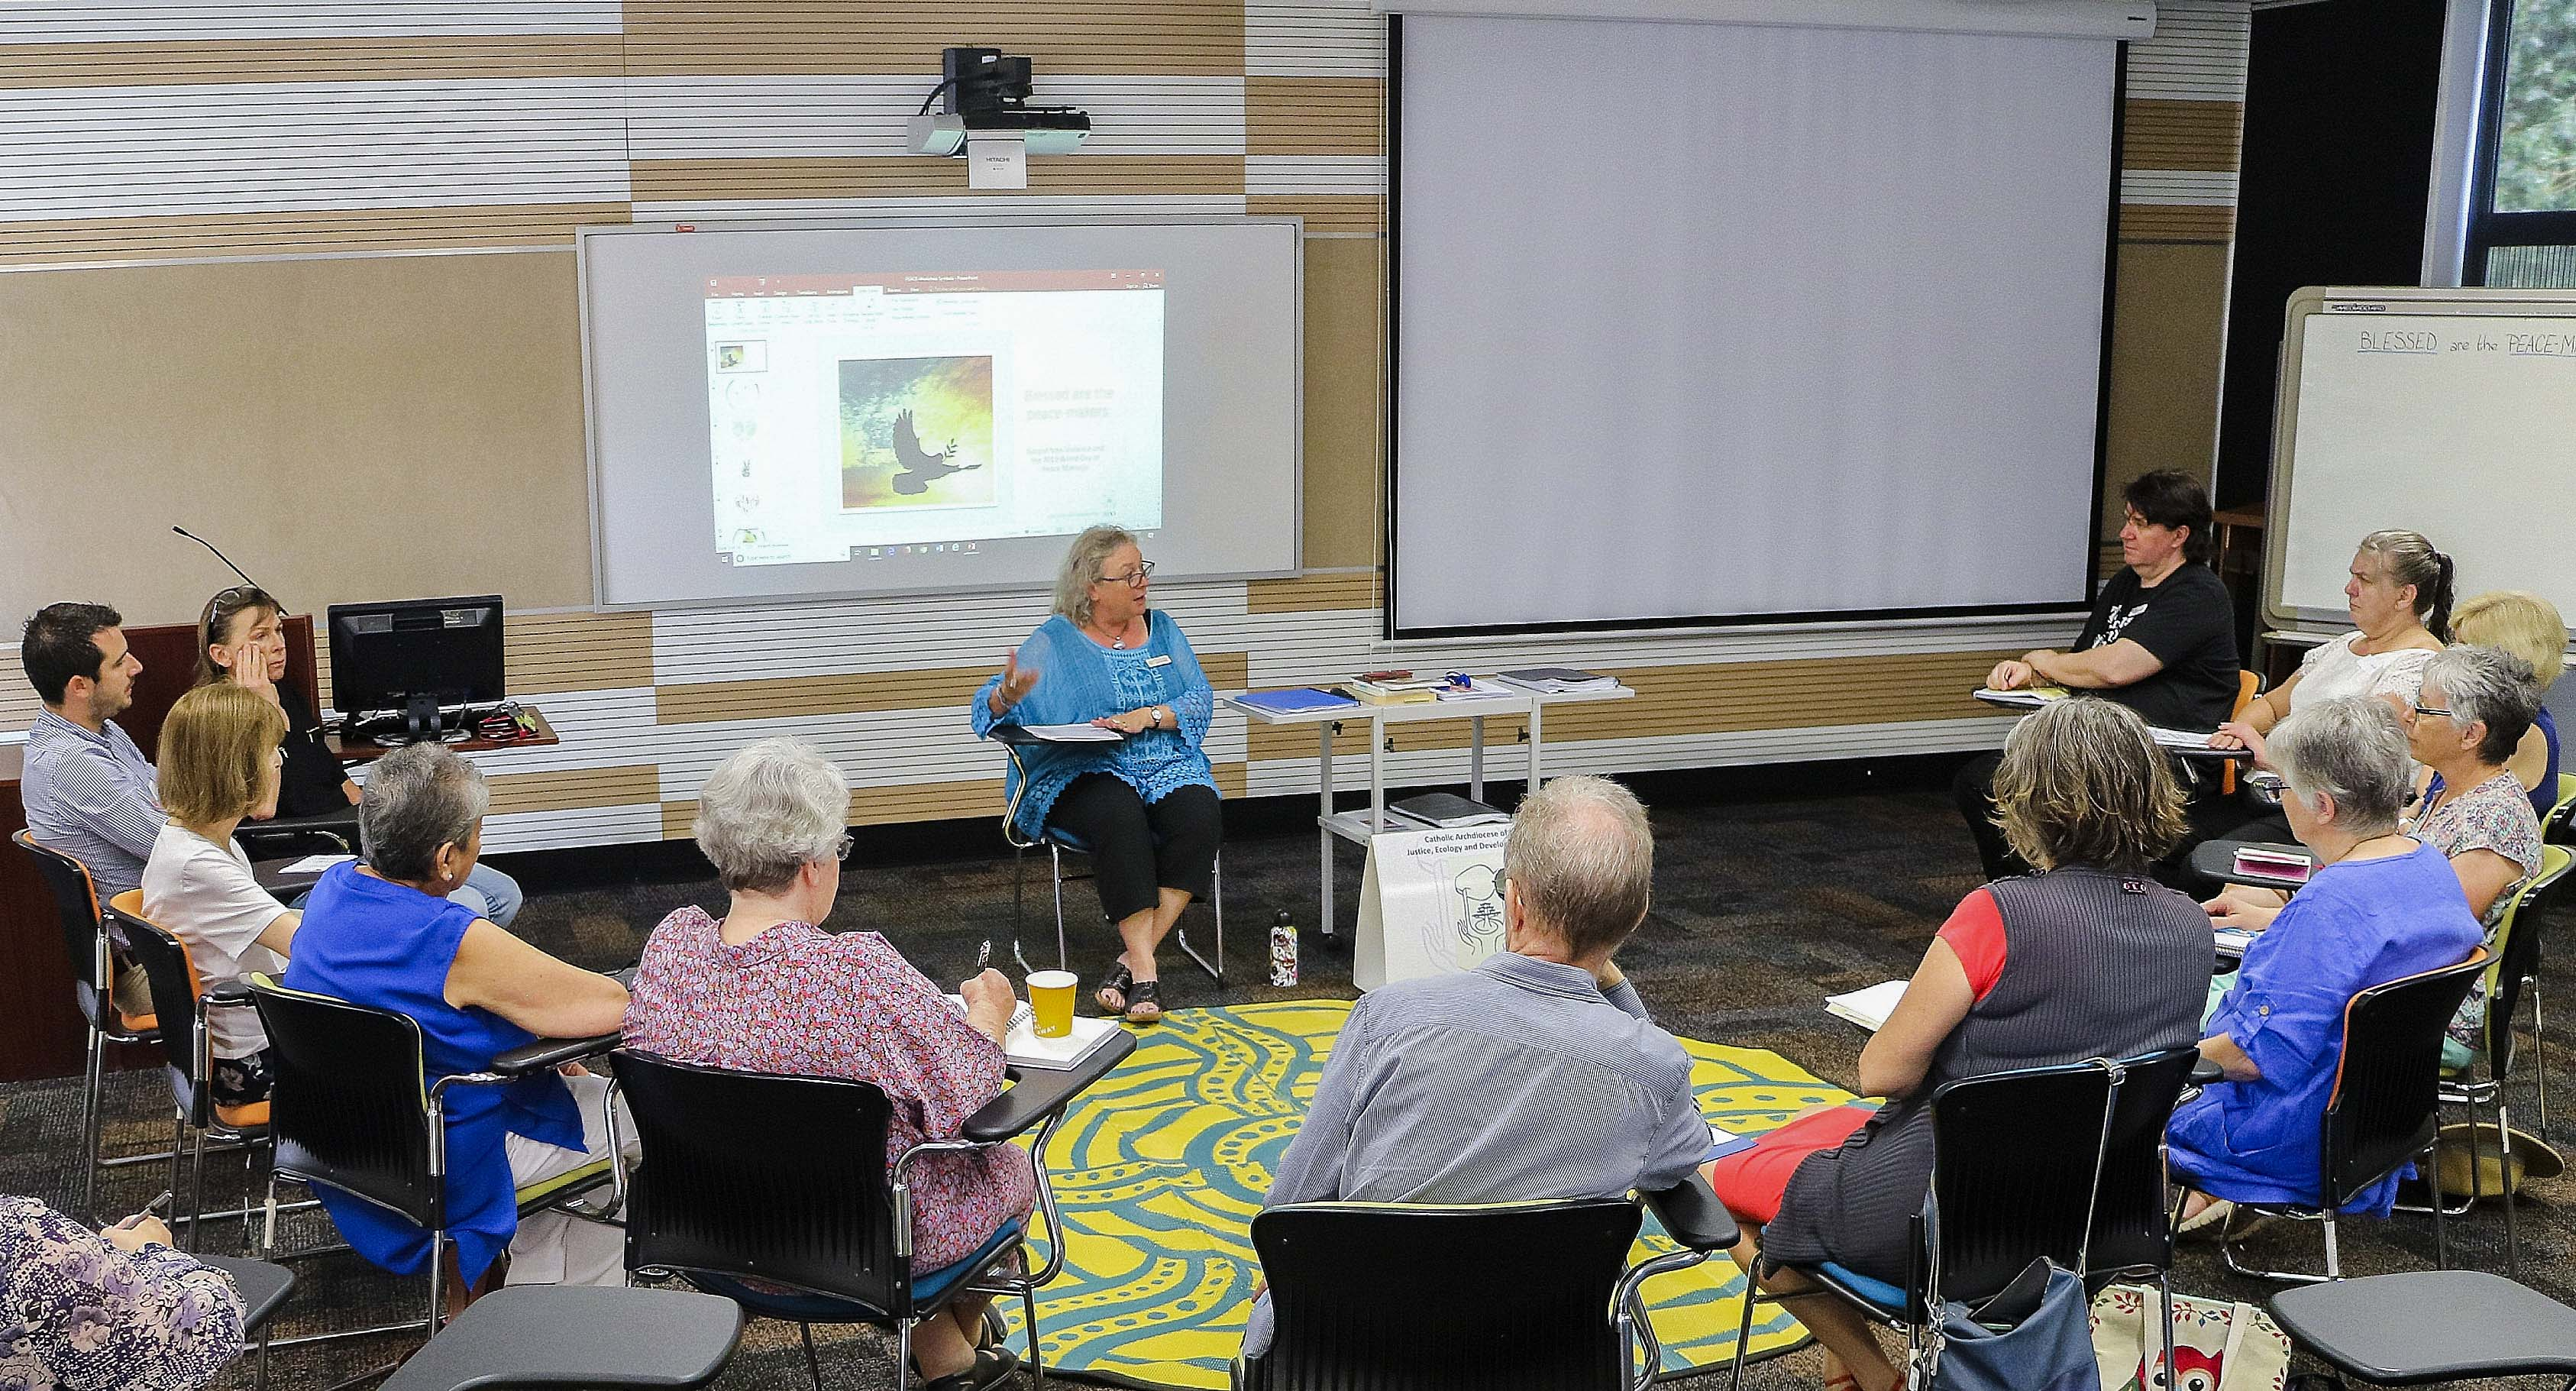 Carol Mitchell delivered at the 2019 Gospel Non-Violence and the World Day of Peace Message workshop, held on Thursday 28 February at the Newman Siena Centre. Photo: Beryl Rahman from JEDO.